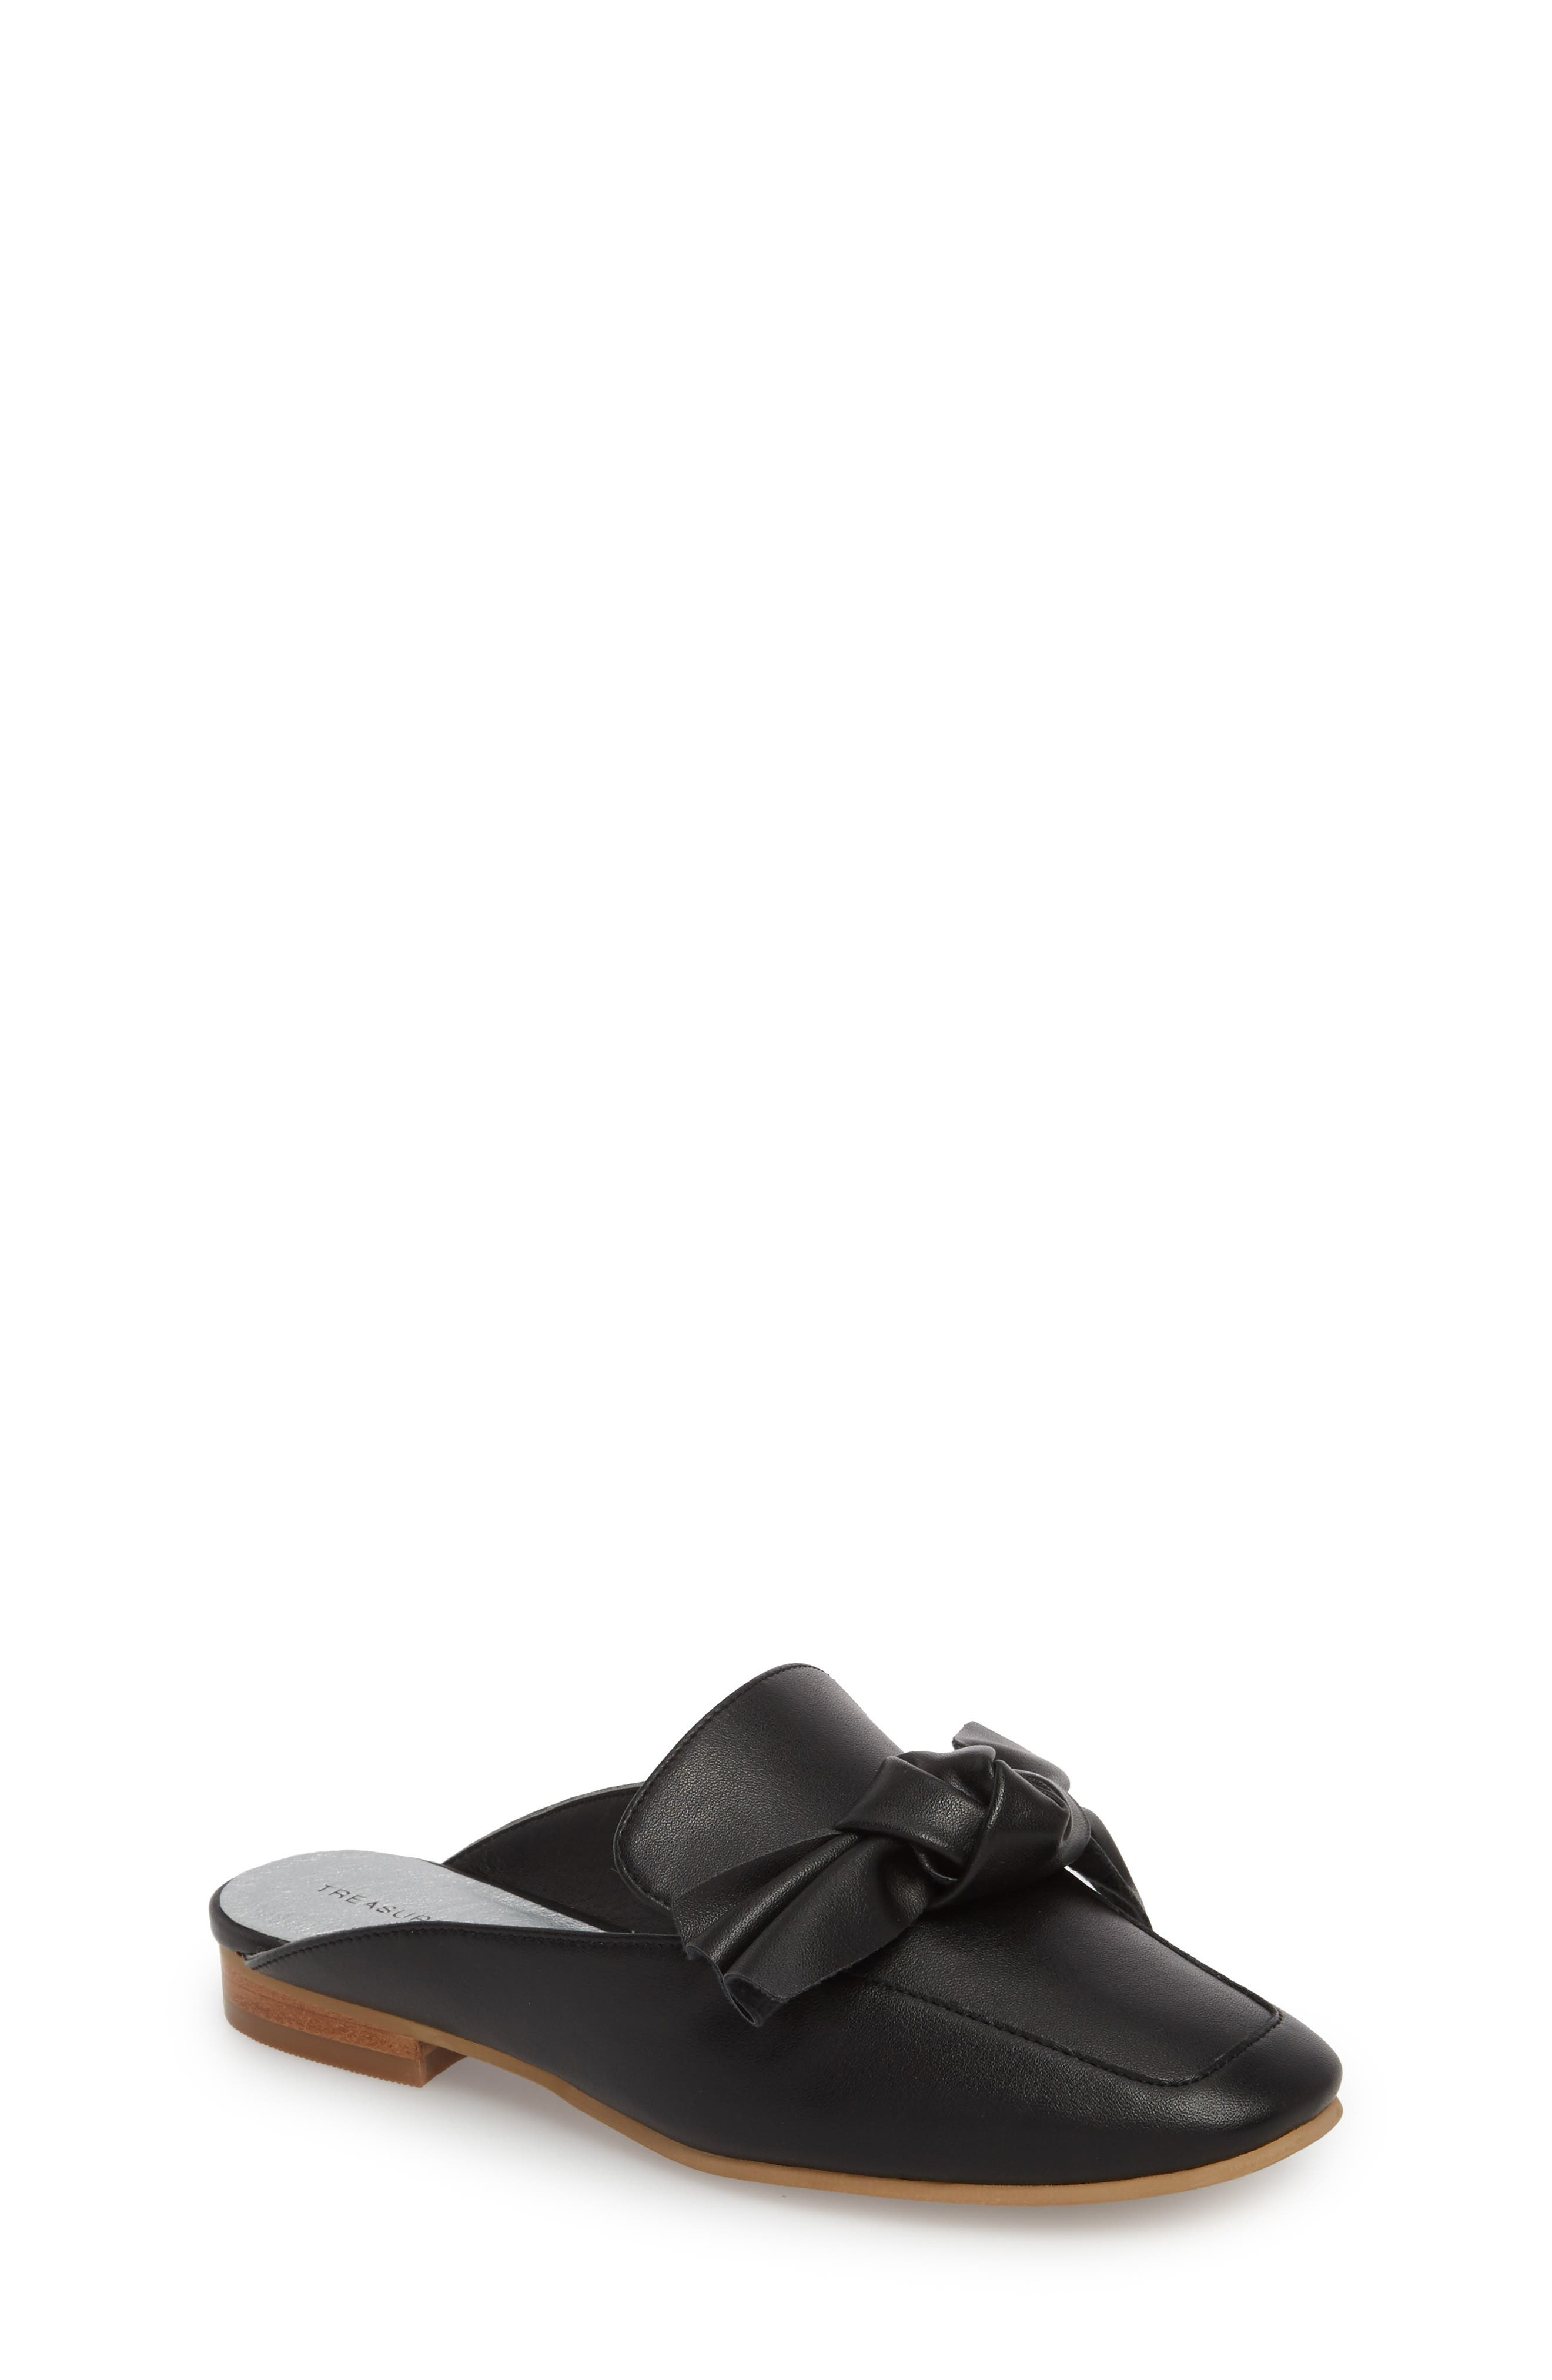 Gina Knotted Loafer Mule,                         Main,                         color, 001